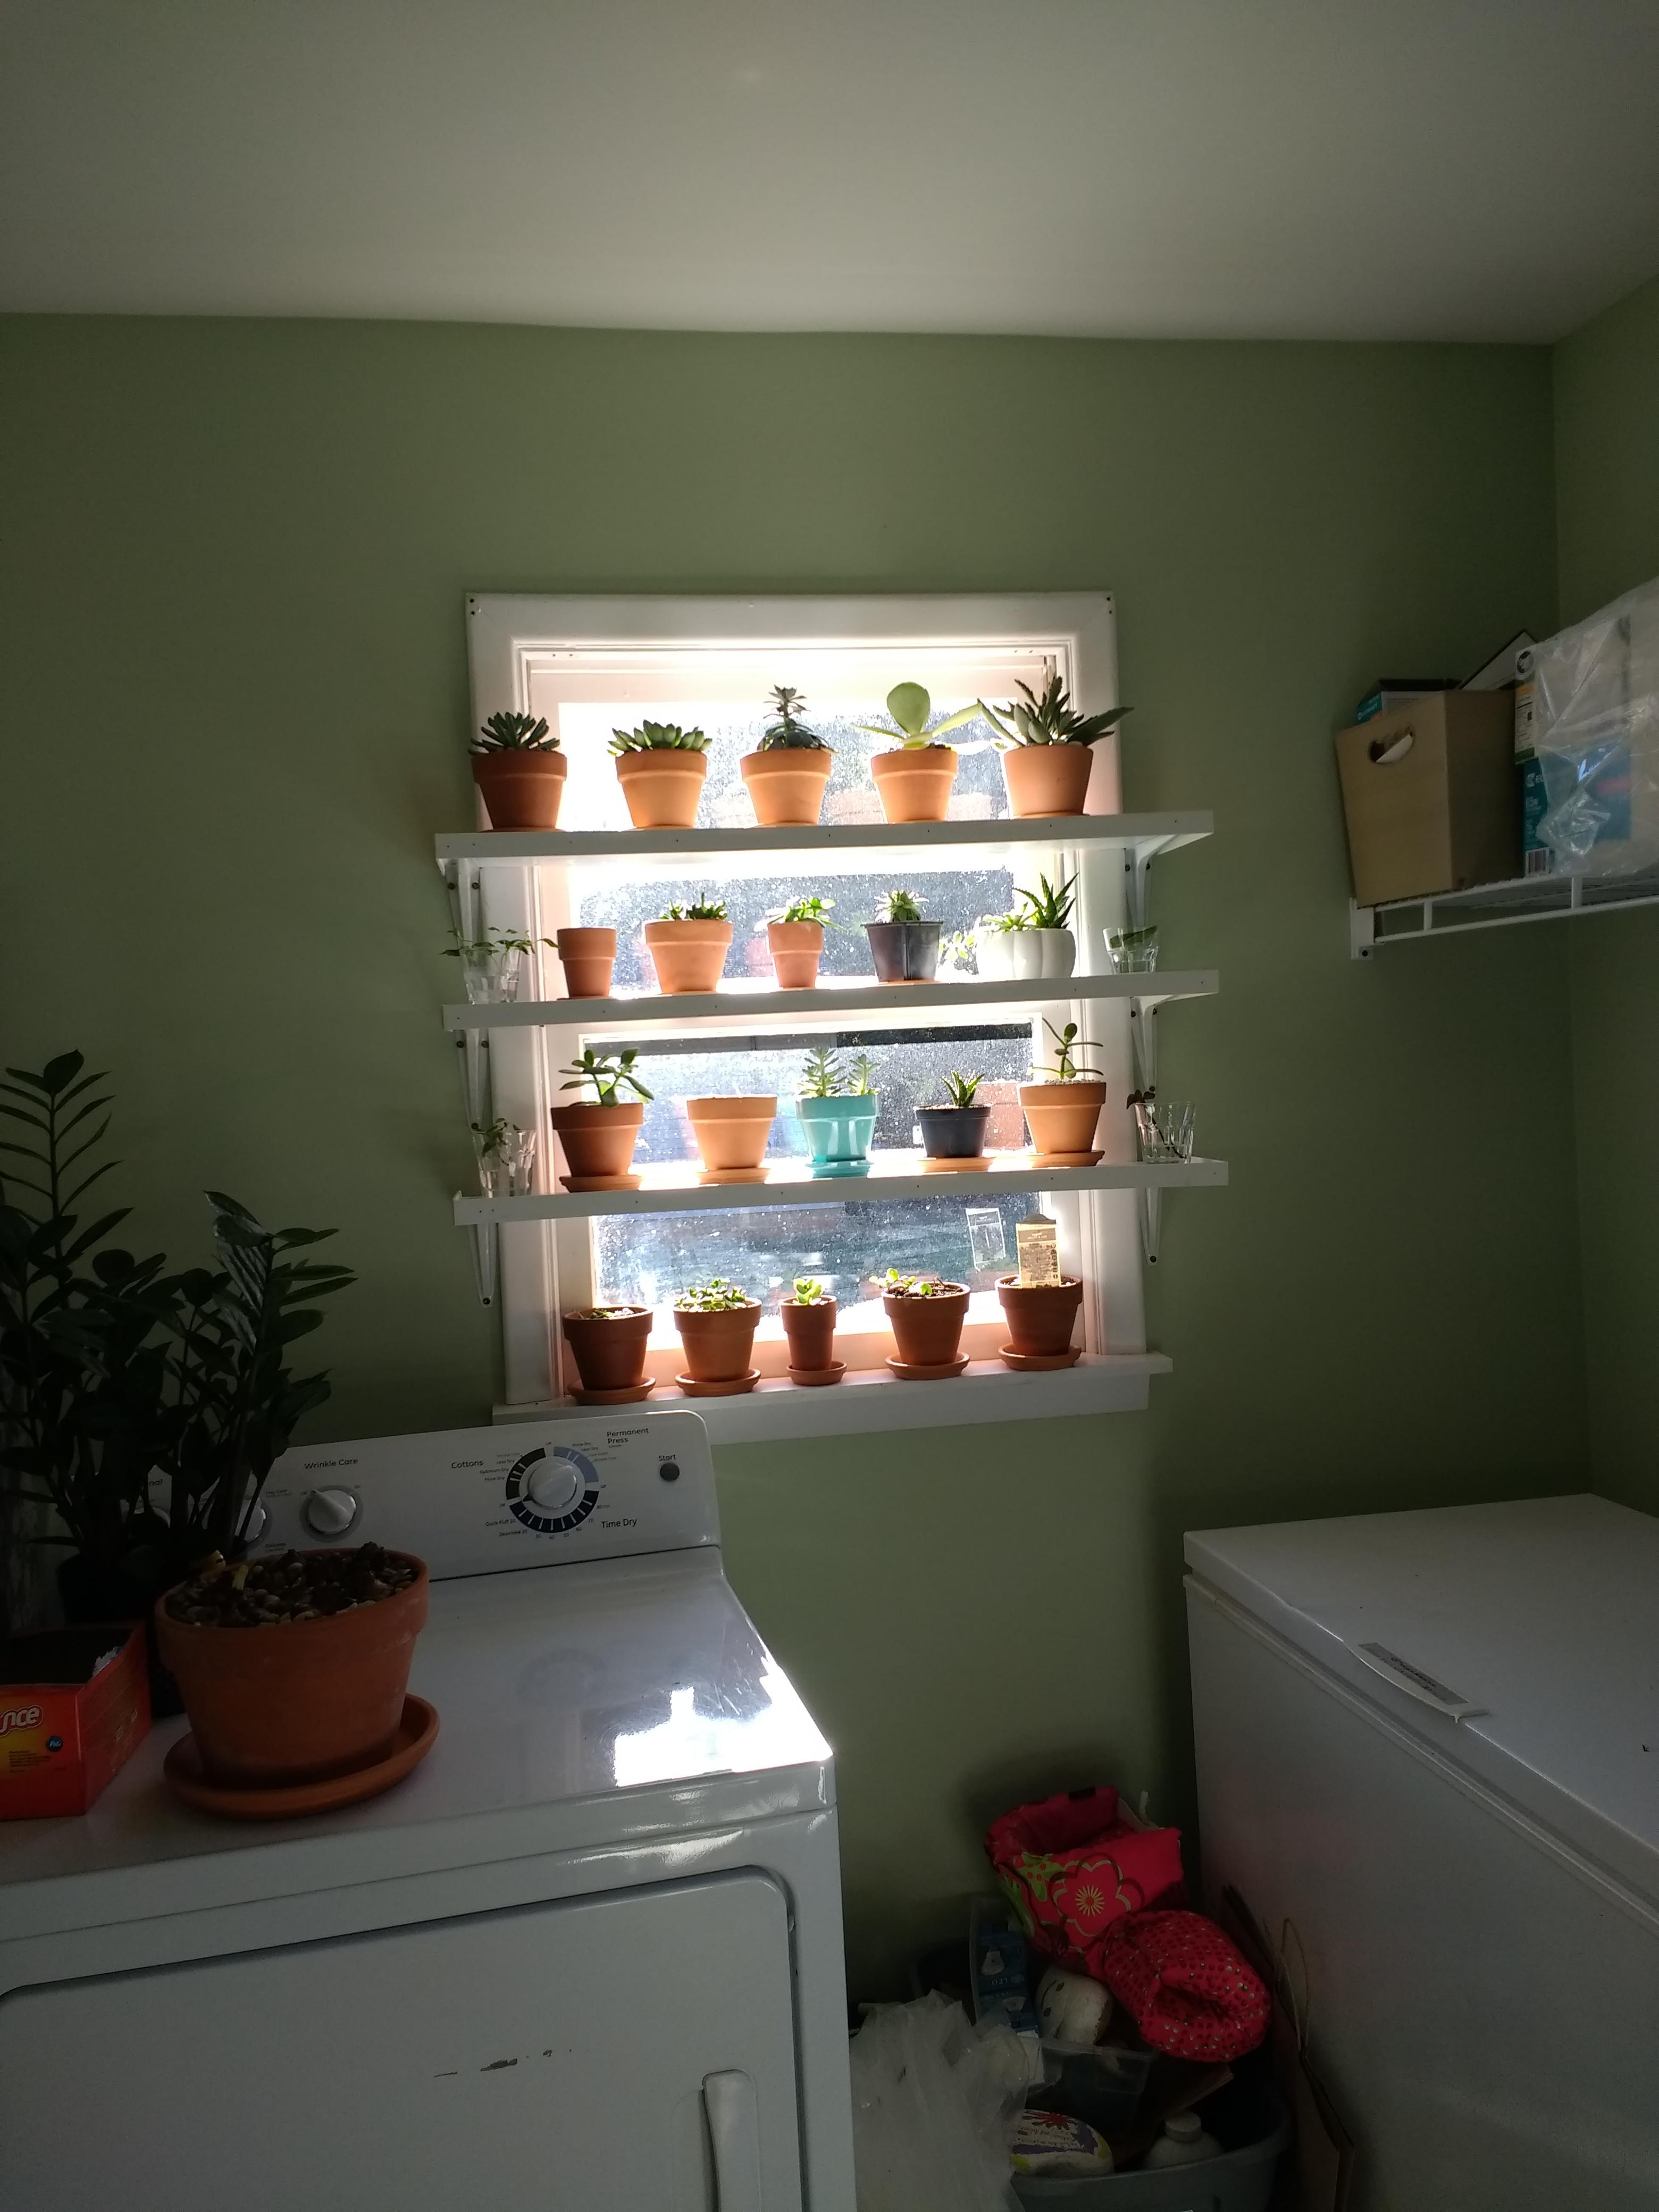 My Husband Loves Me These Shelves Are My Birthday Gift